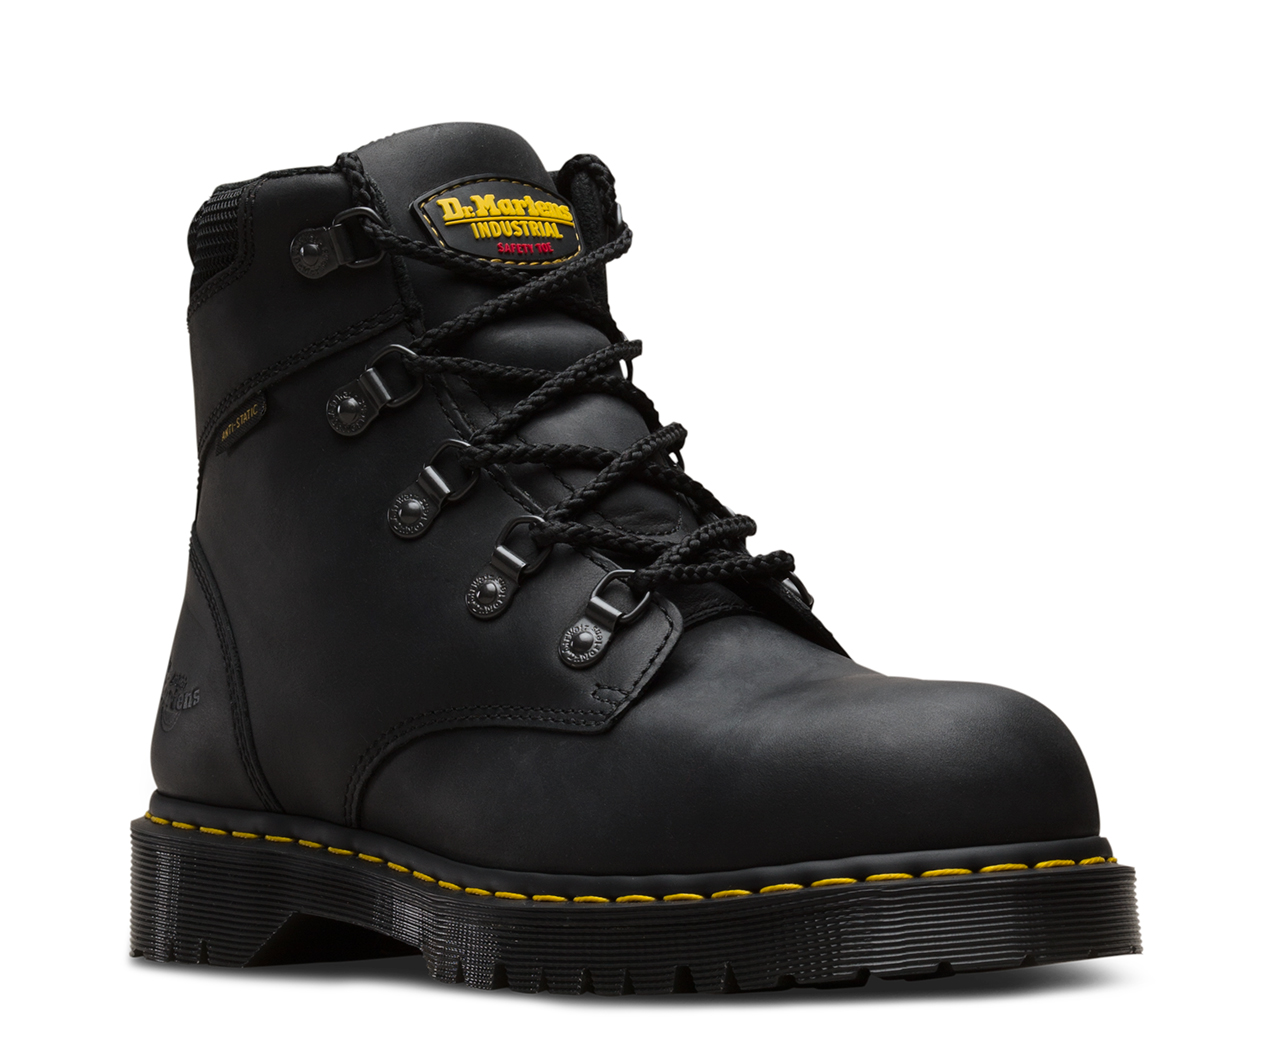 Holkham Work Boots Amp Shoes The Official Us Dr Martens